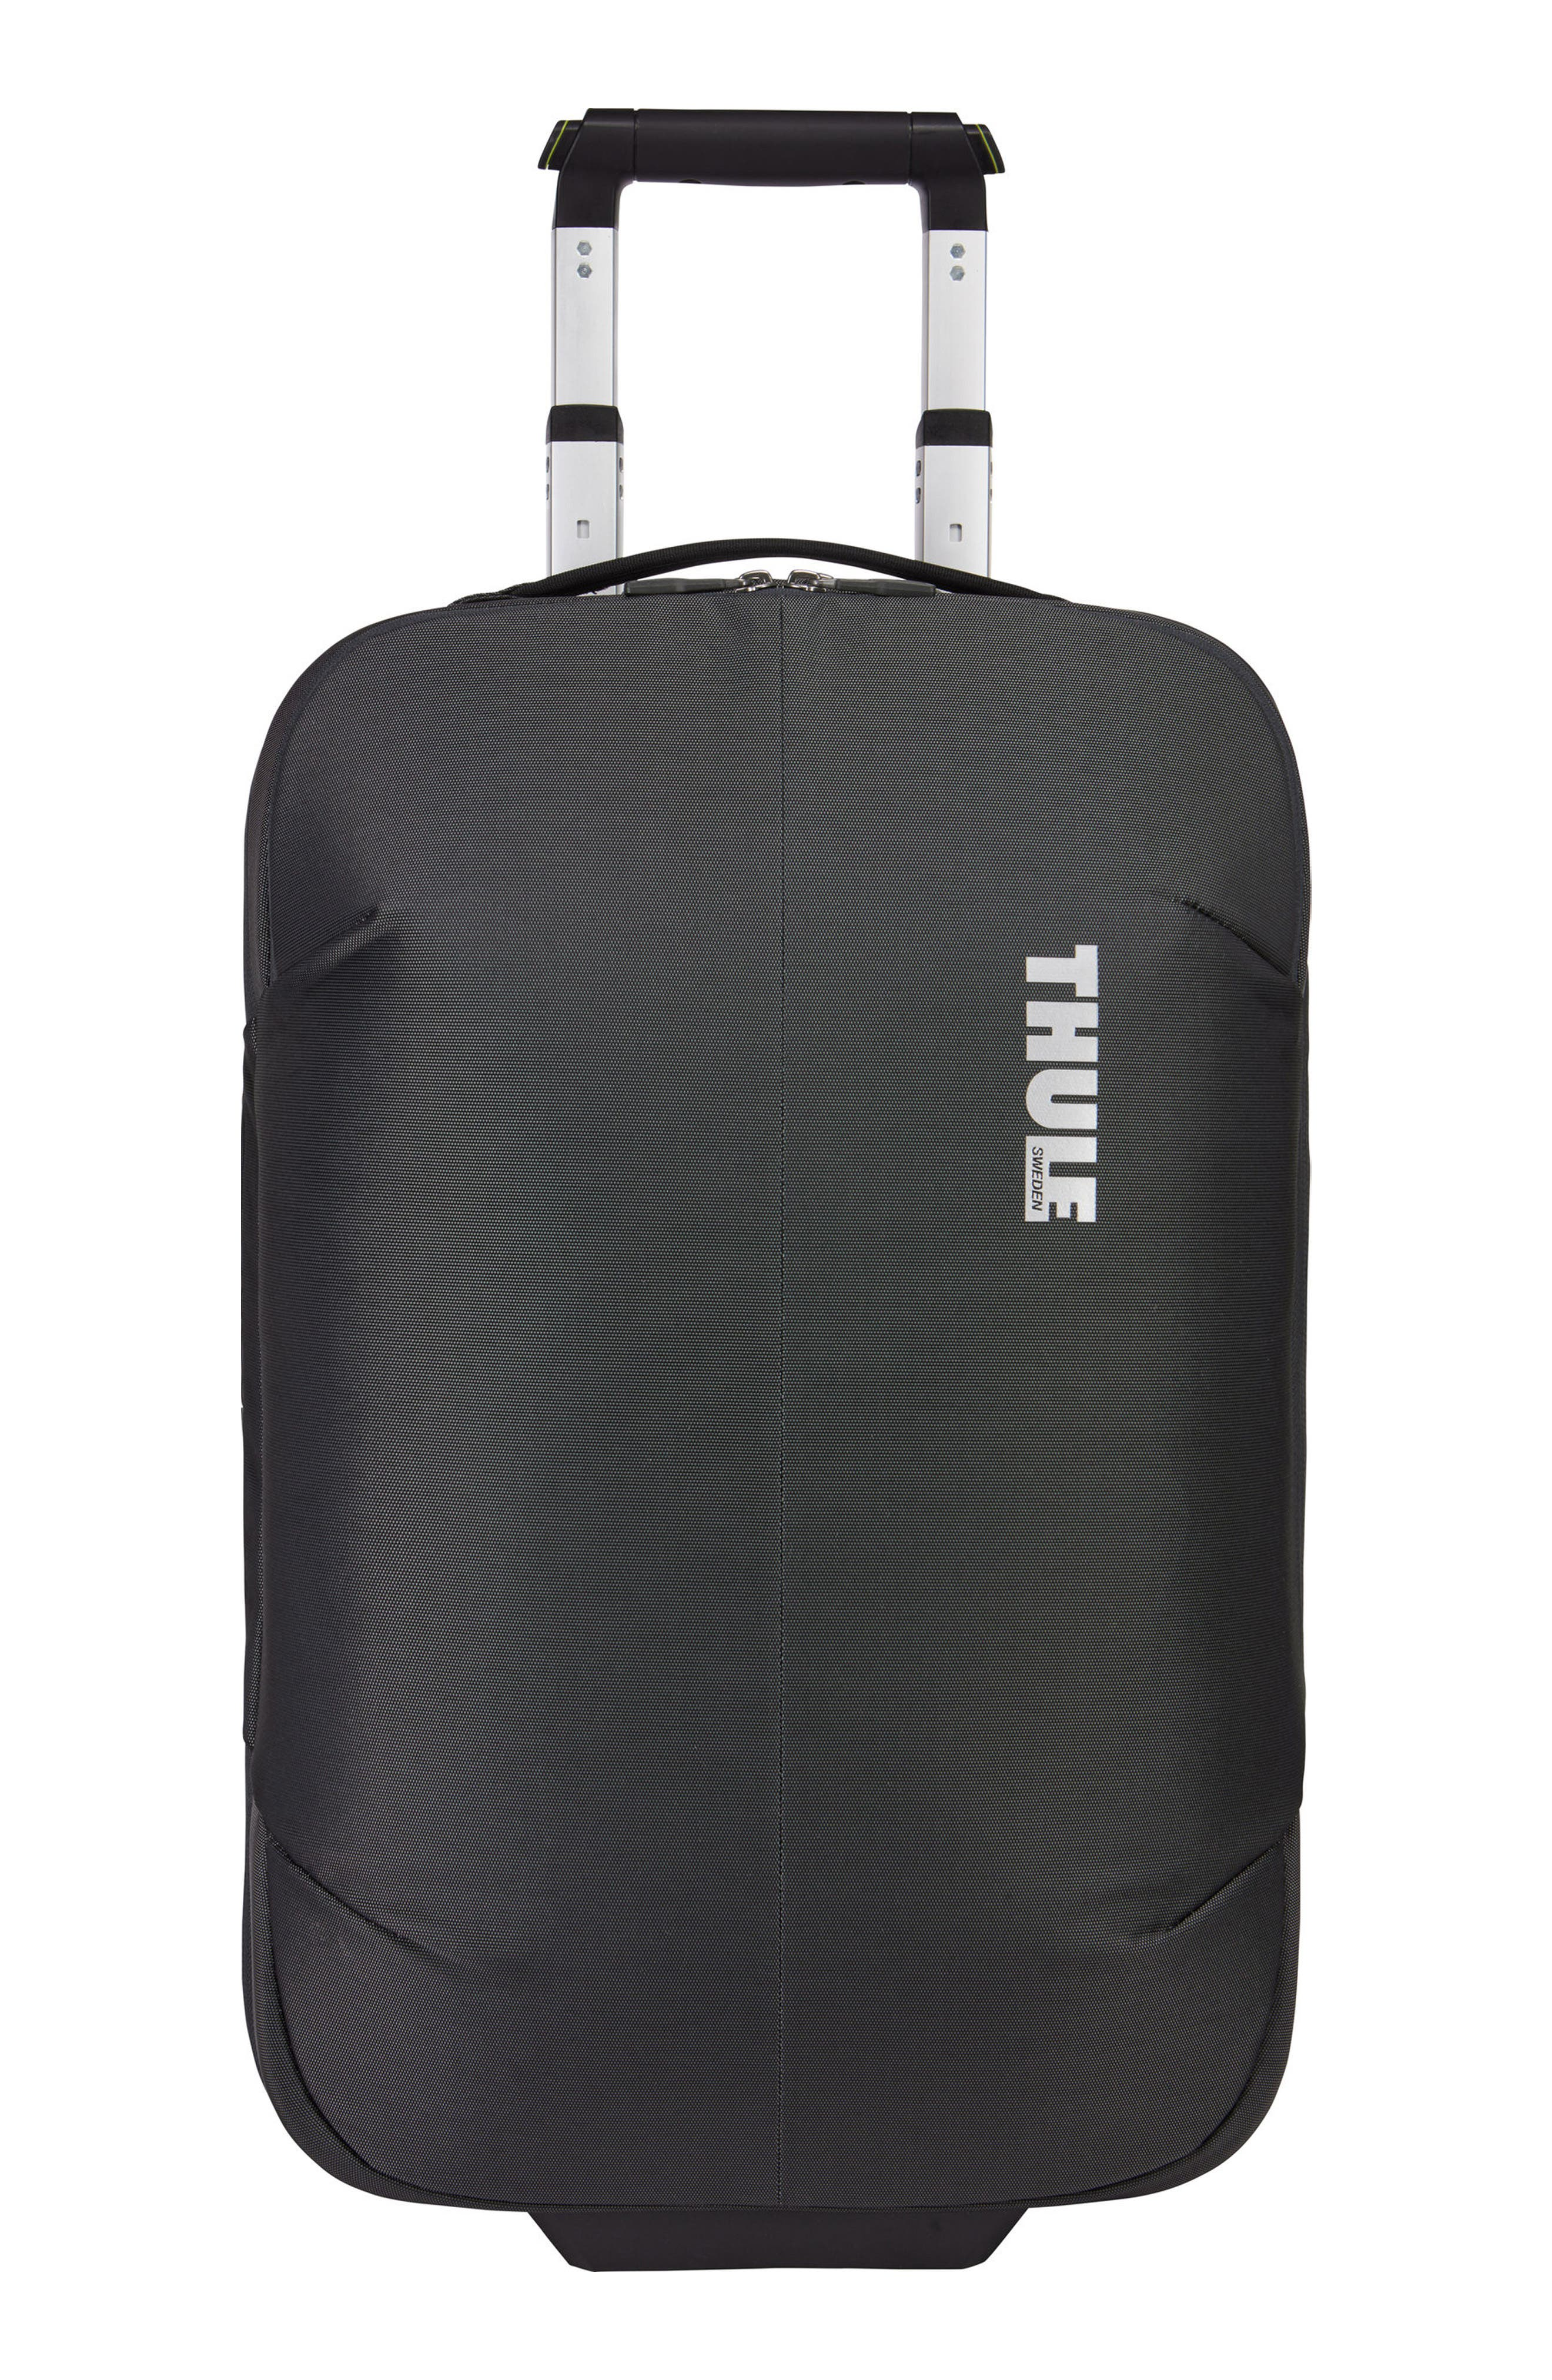 Thule Subterra 22-Inch Carry-On